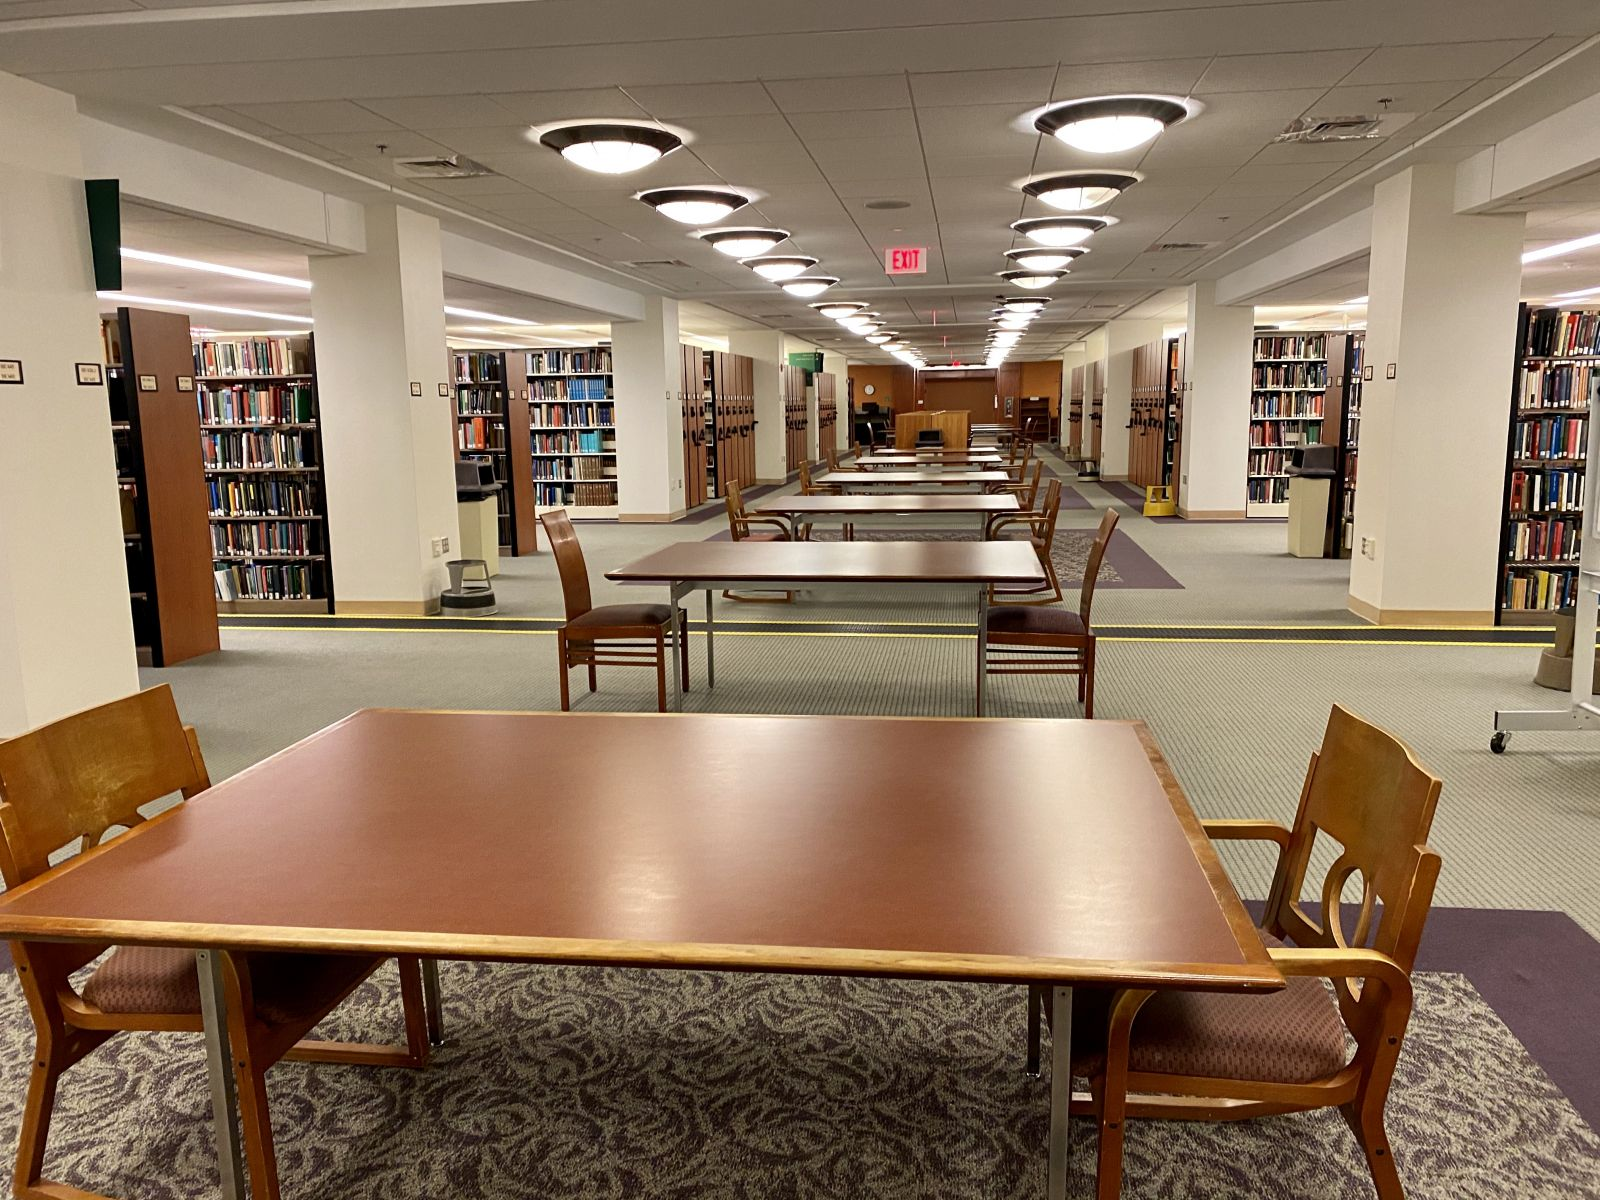 Study area in Swem Library spaced out to meet social distancing requirements